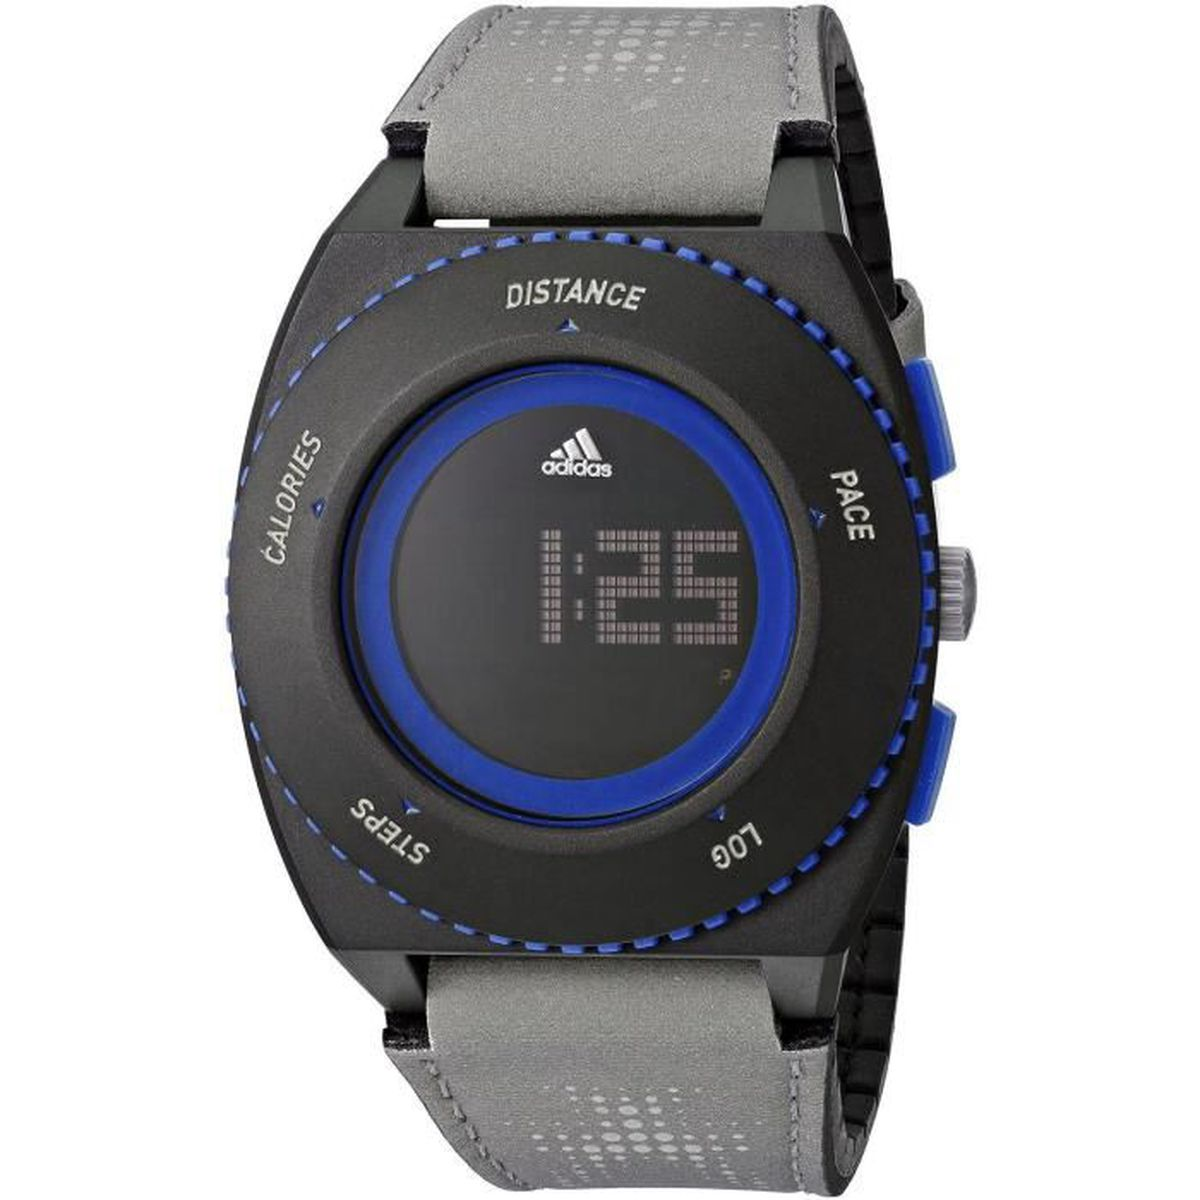 adidas homme 45mm bracelet tissu gris boitier plastique quartz montre adp3239 achat vente. Black Bedroom Furniture Sets. Home Design Ideas